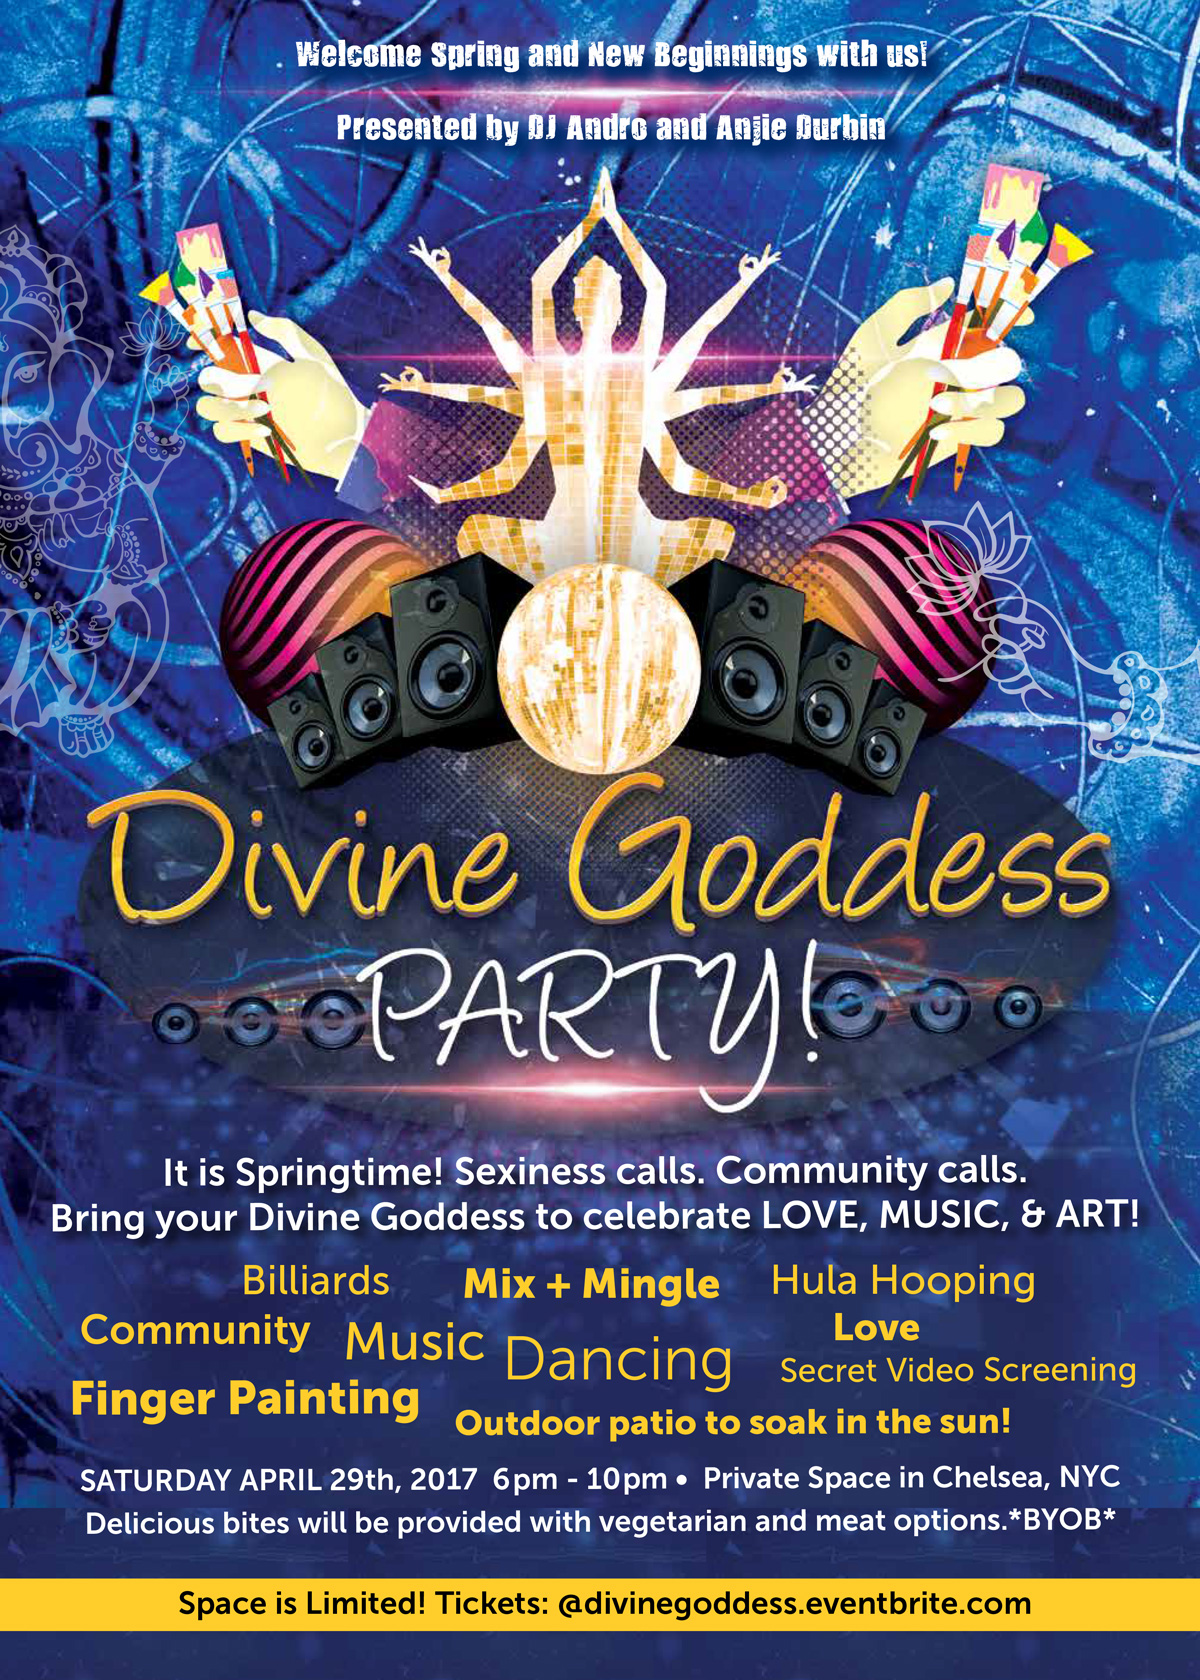 Divine Goddess Spring Party NYC